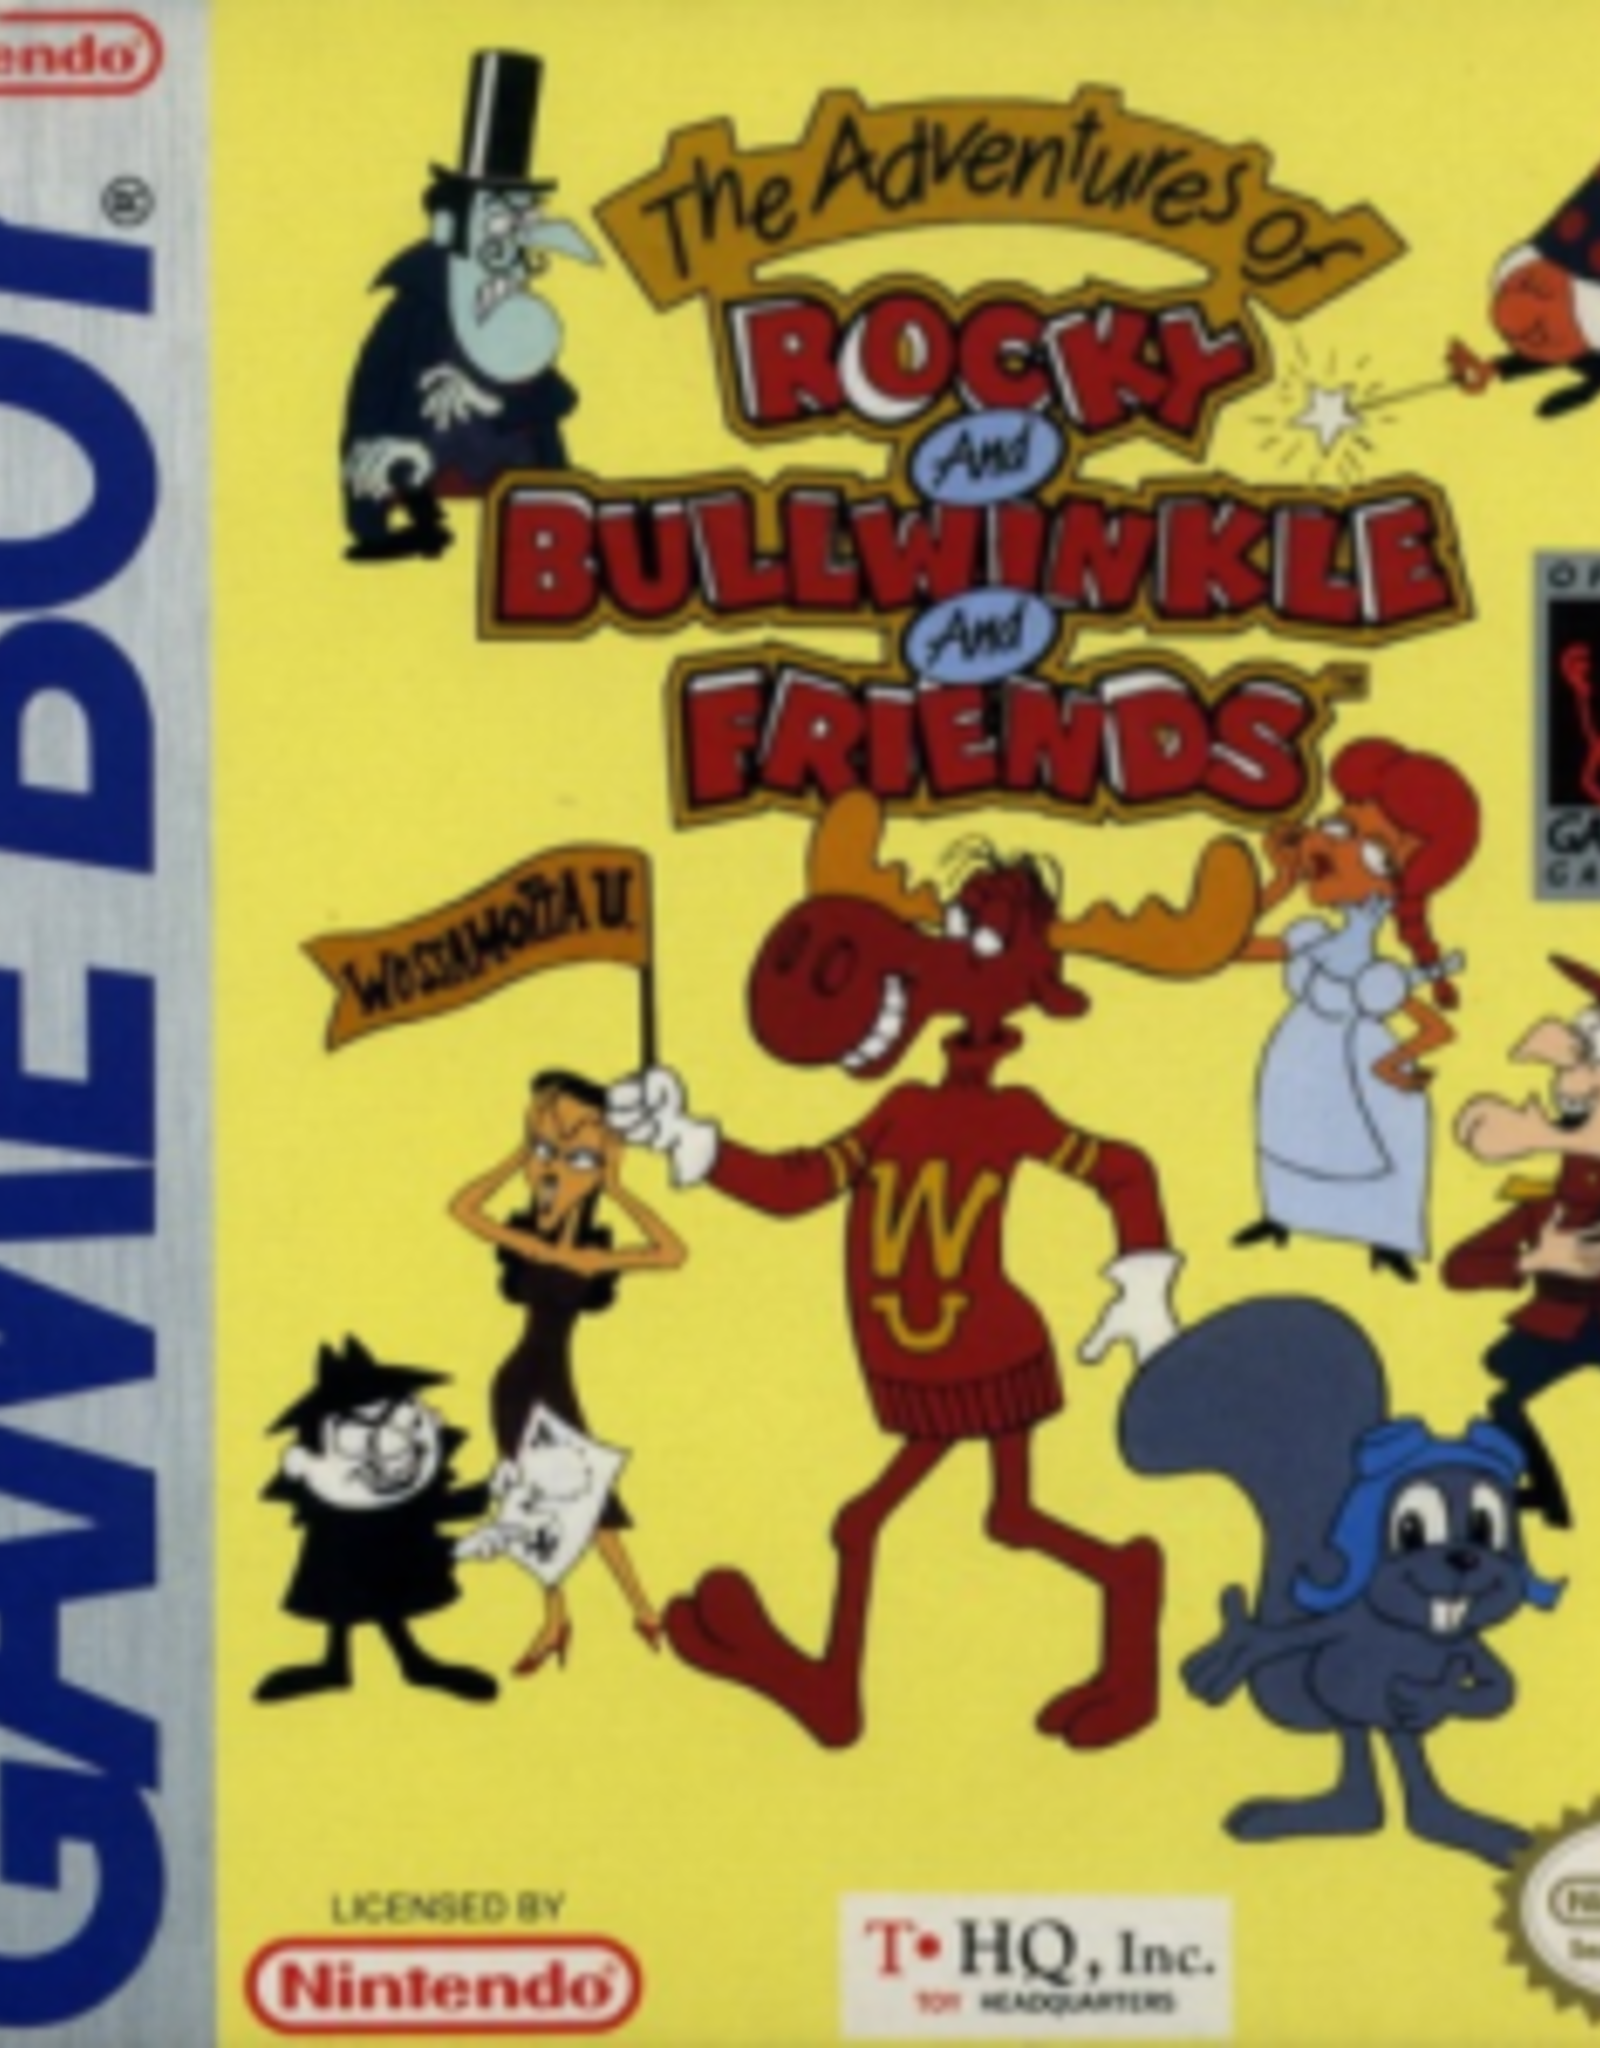 GameBoy Adventures of Rocky and Bullwinkle and Friends (Cart Only)